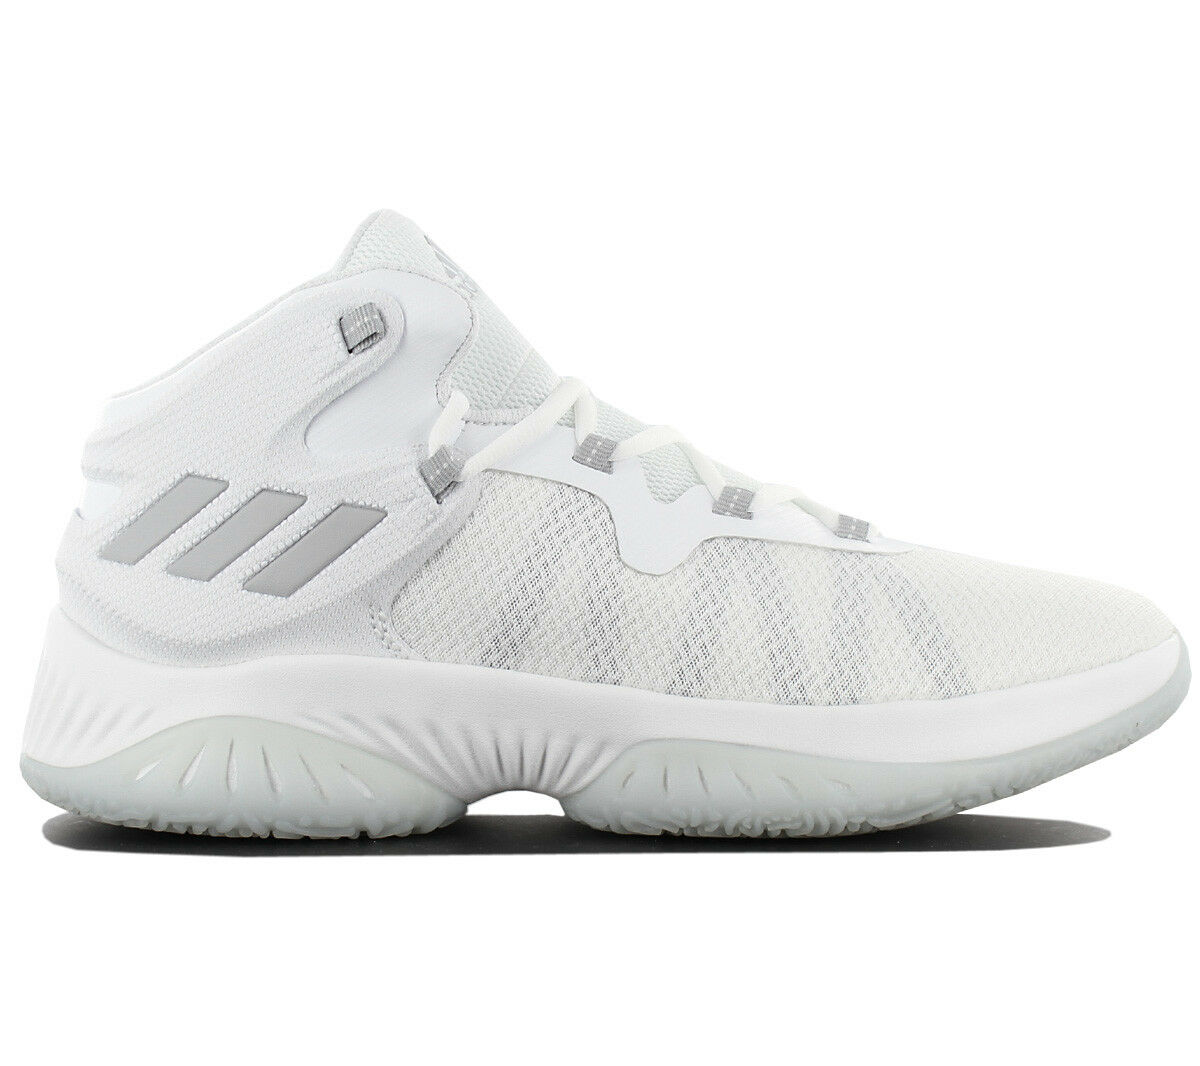 Adidas Explosive Bounce Men's Basketballshoe shoes Trainers White By4467